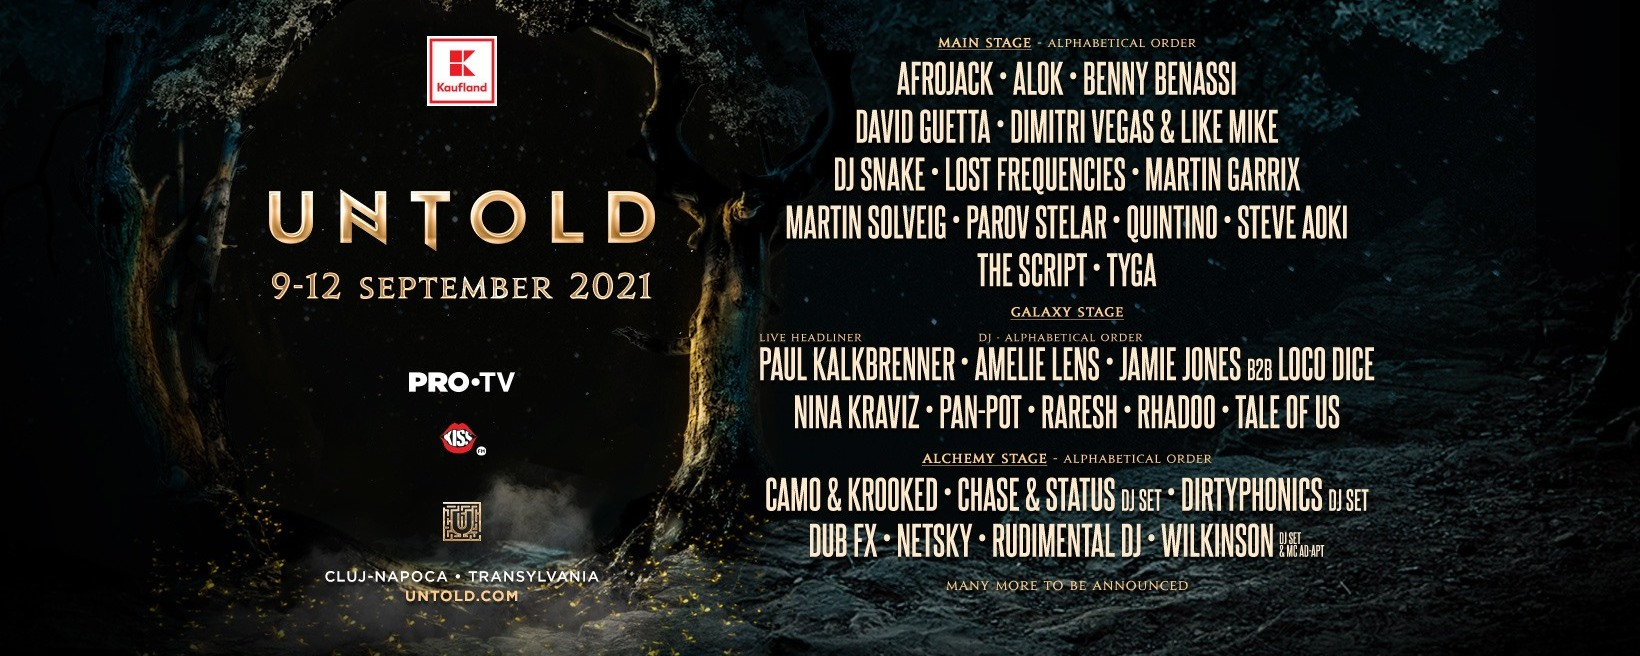 untold 2021 lineup first wave